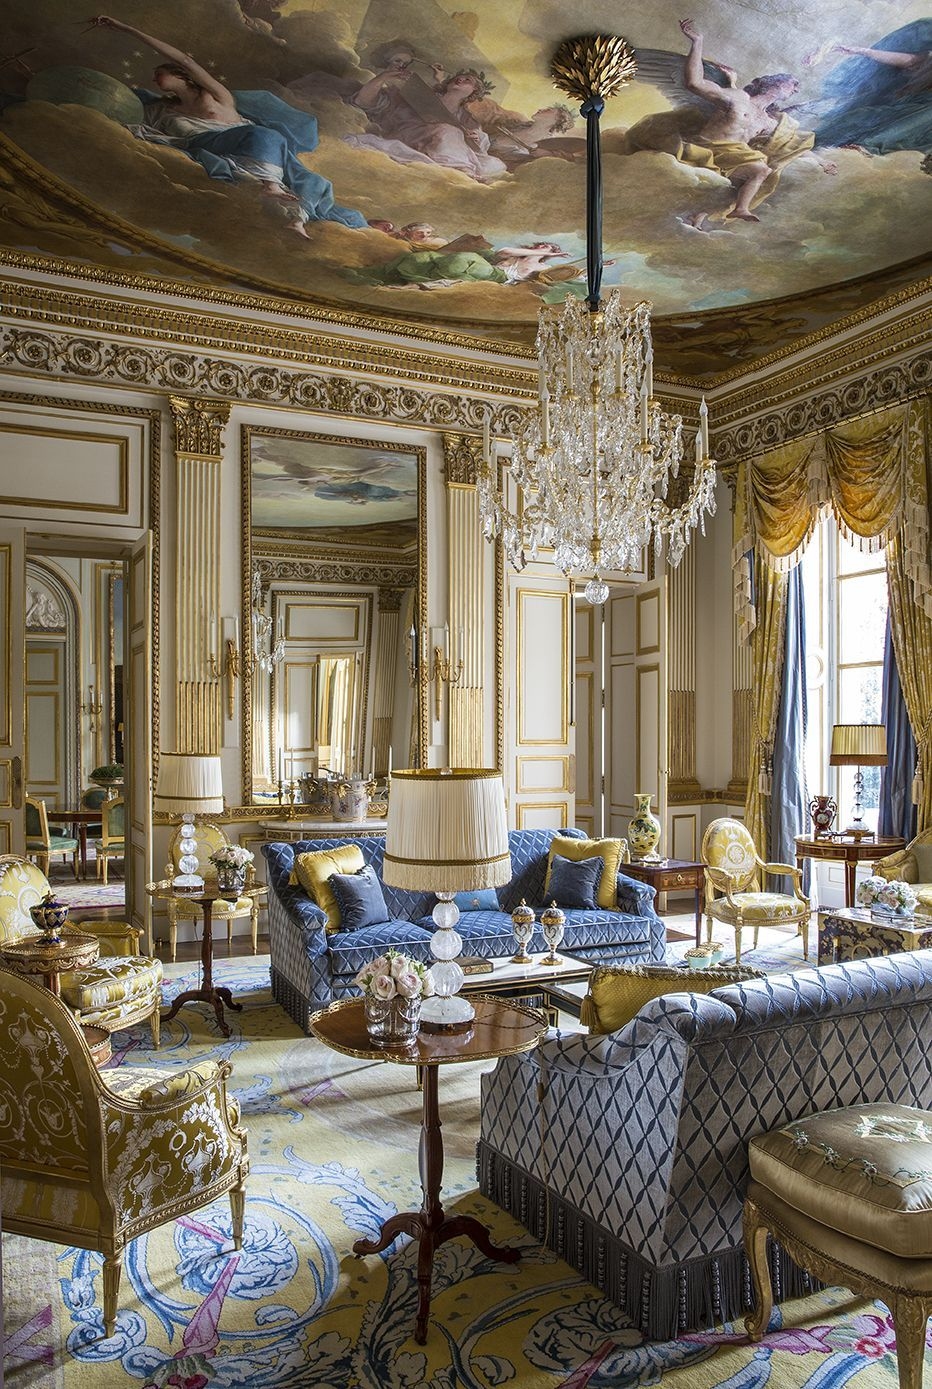 Remembering A Legendary Interior Designer With Images Classic